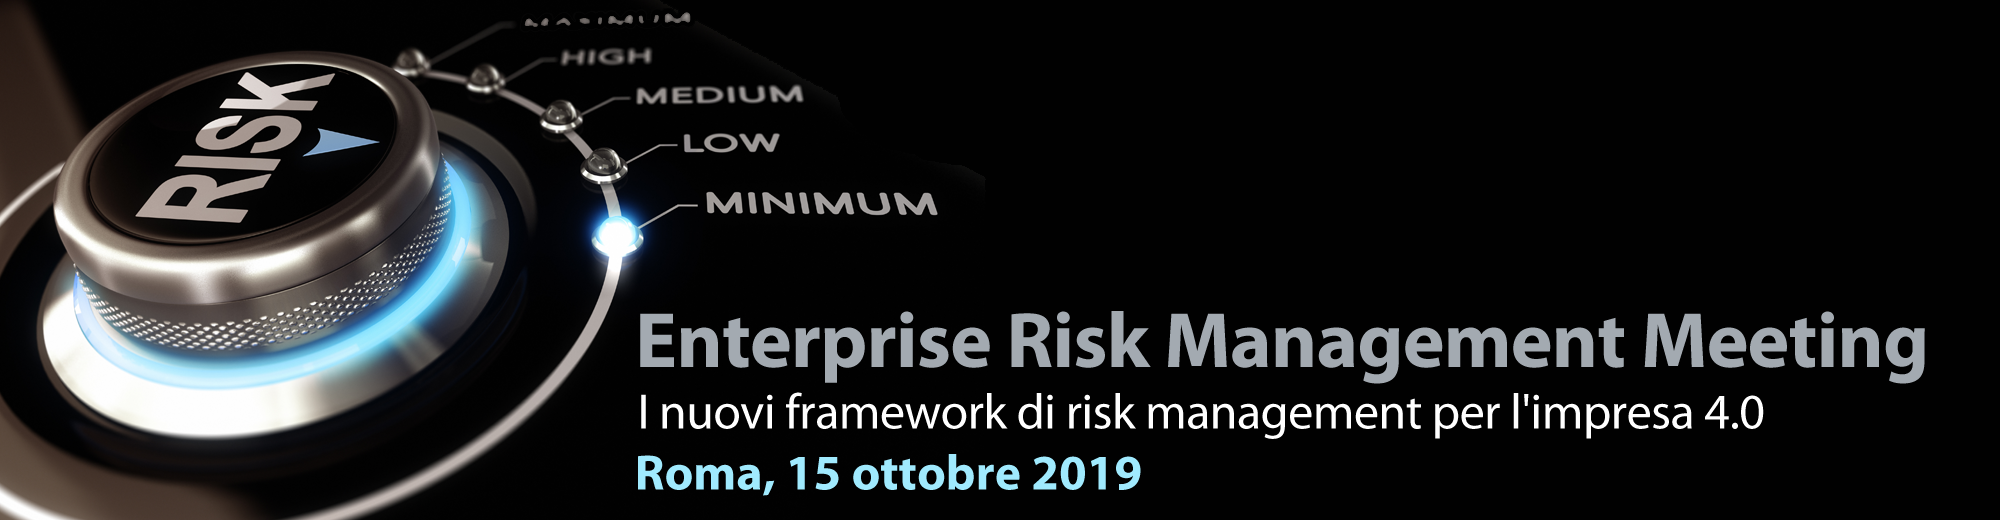 Enterprise Risk Management 2019